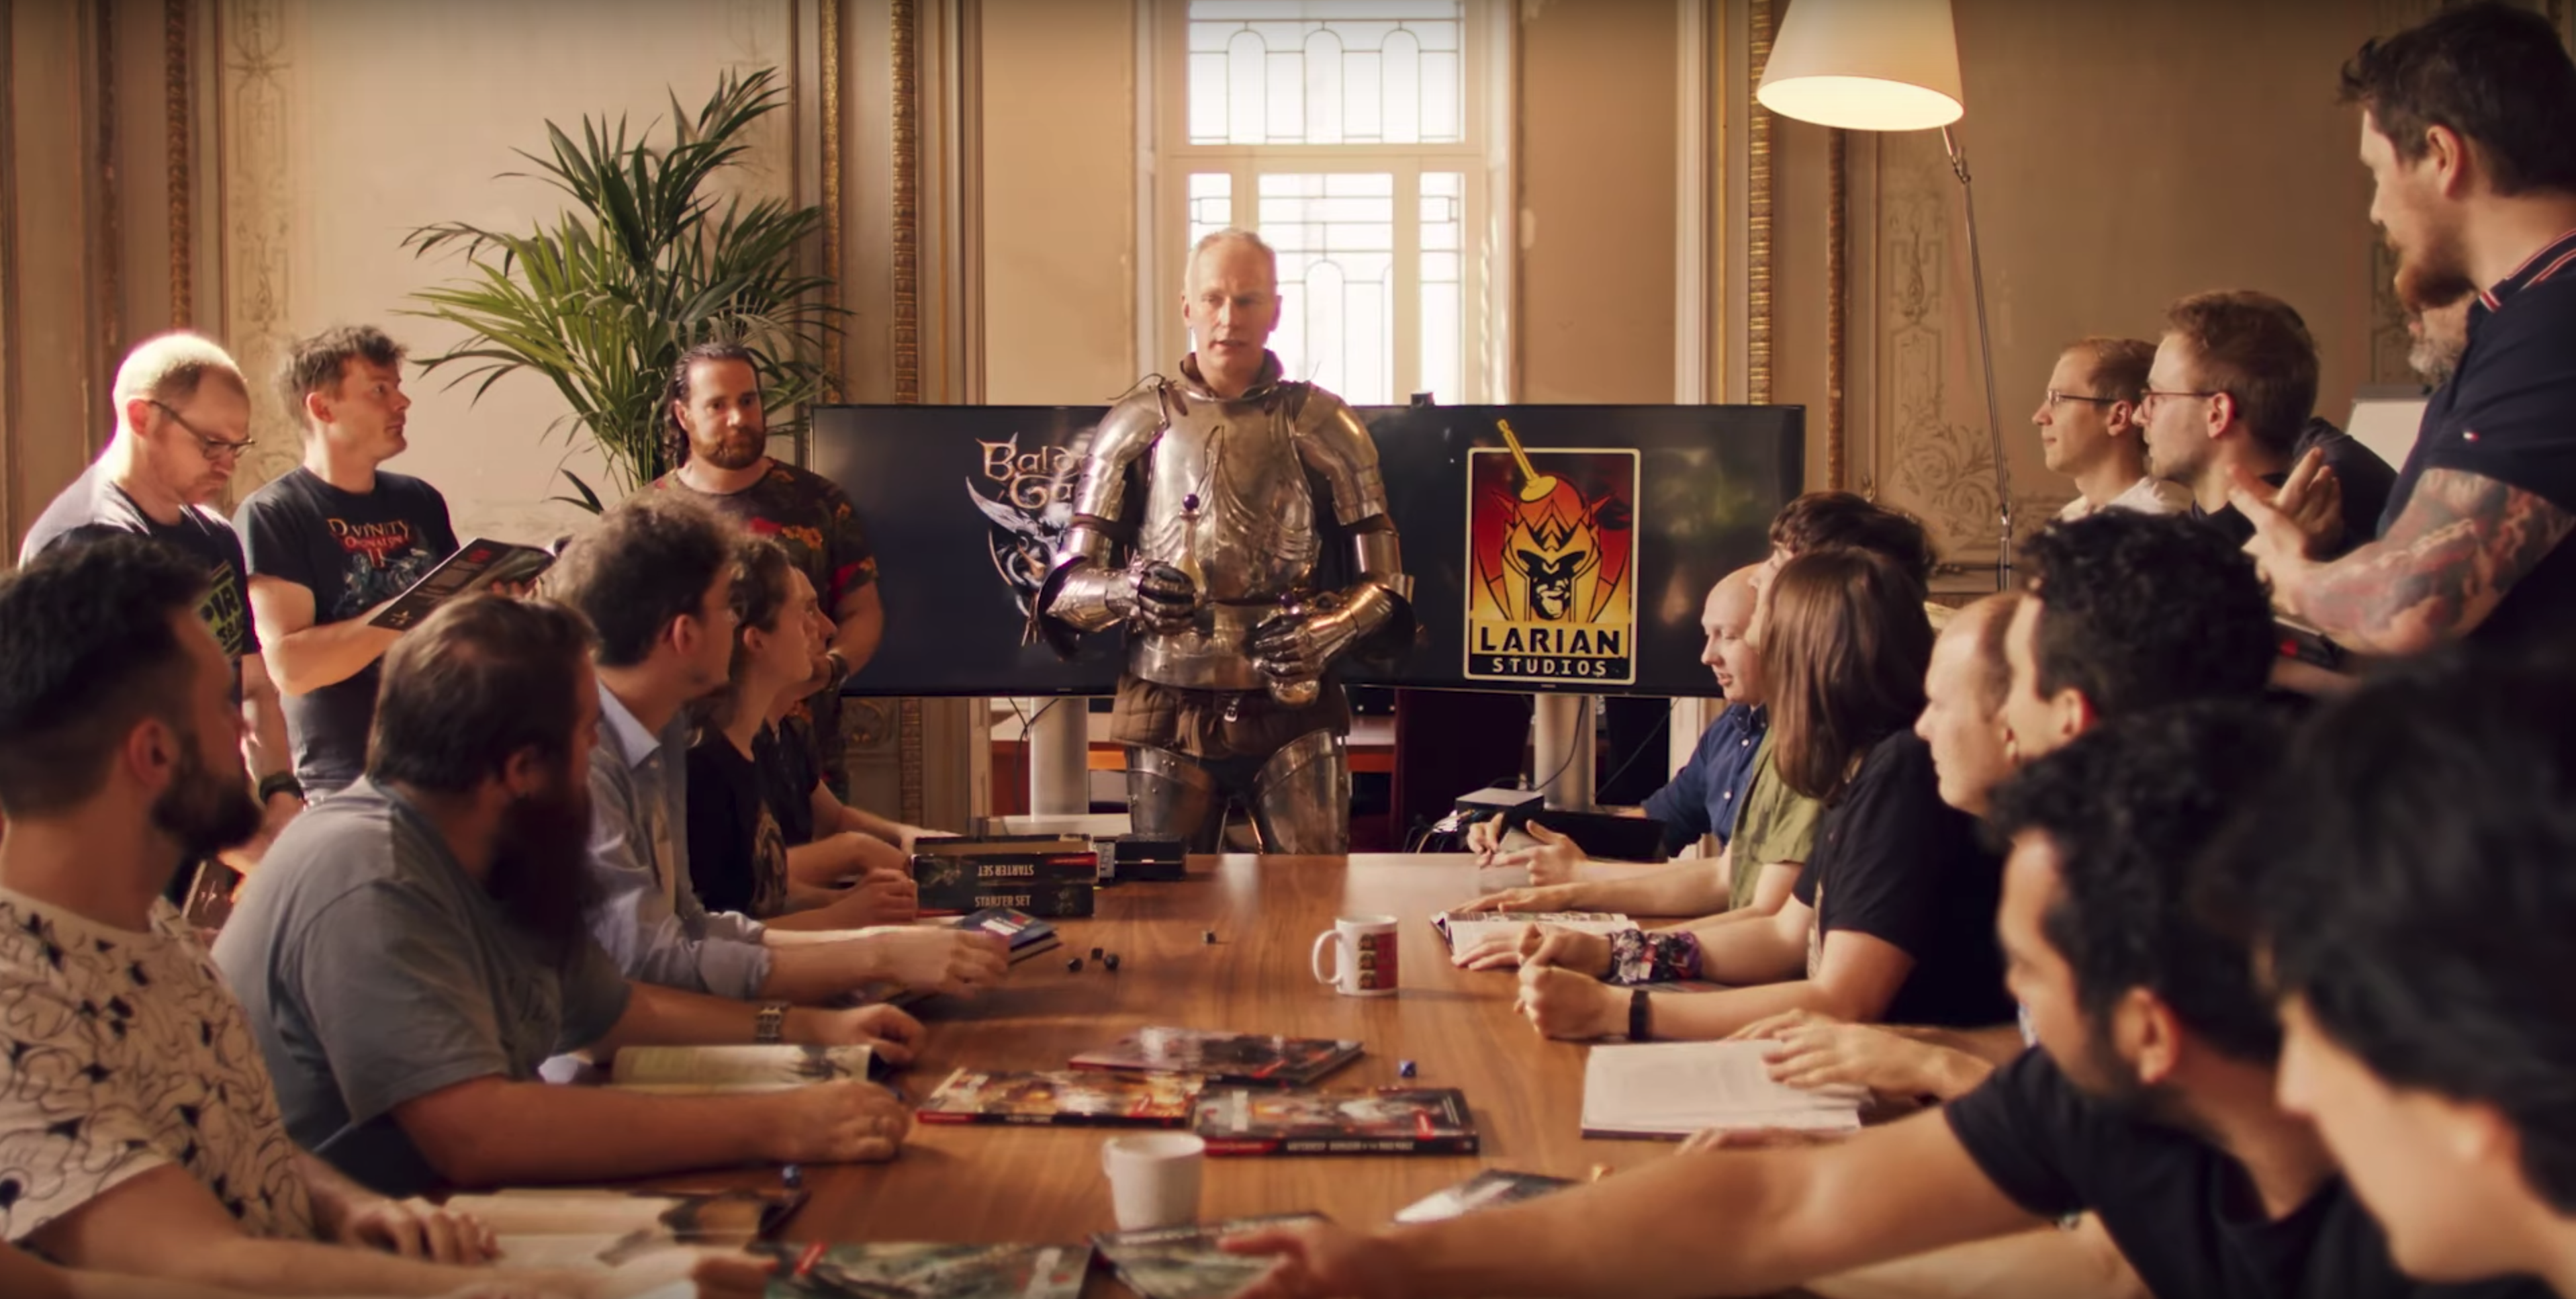 Larian Shares The Very Serious Story Of How They Got The Baldur's Gate 3 Deal